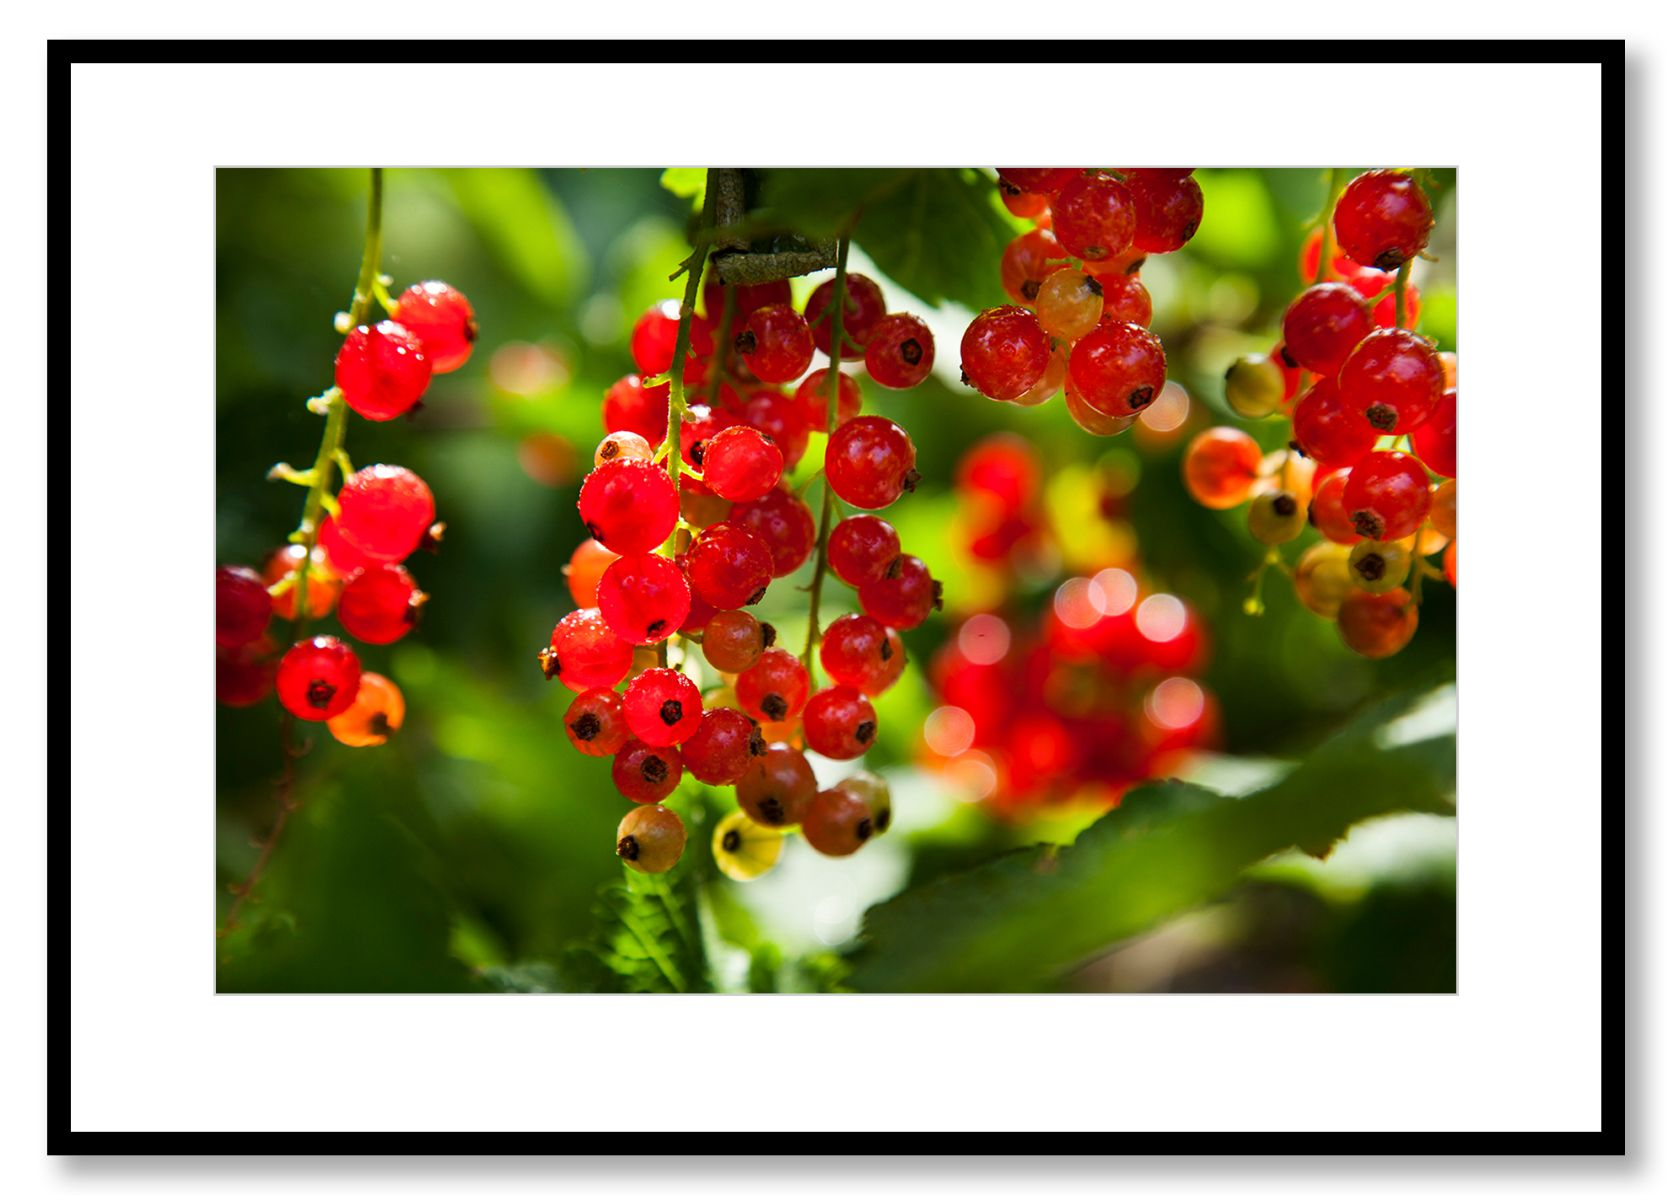 Red  currants. Food Art. Prints for sale. Photo by Fredrik Rege